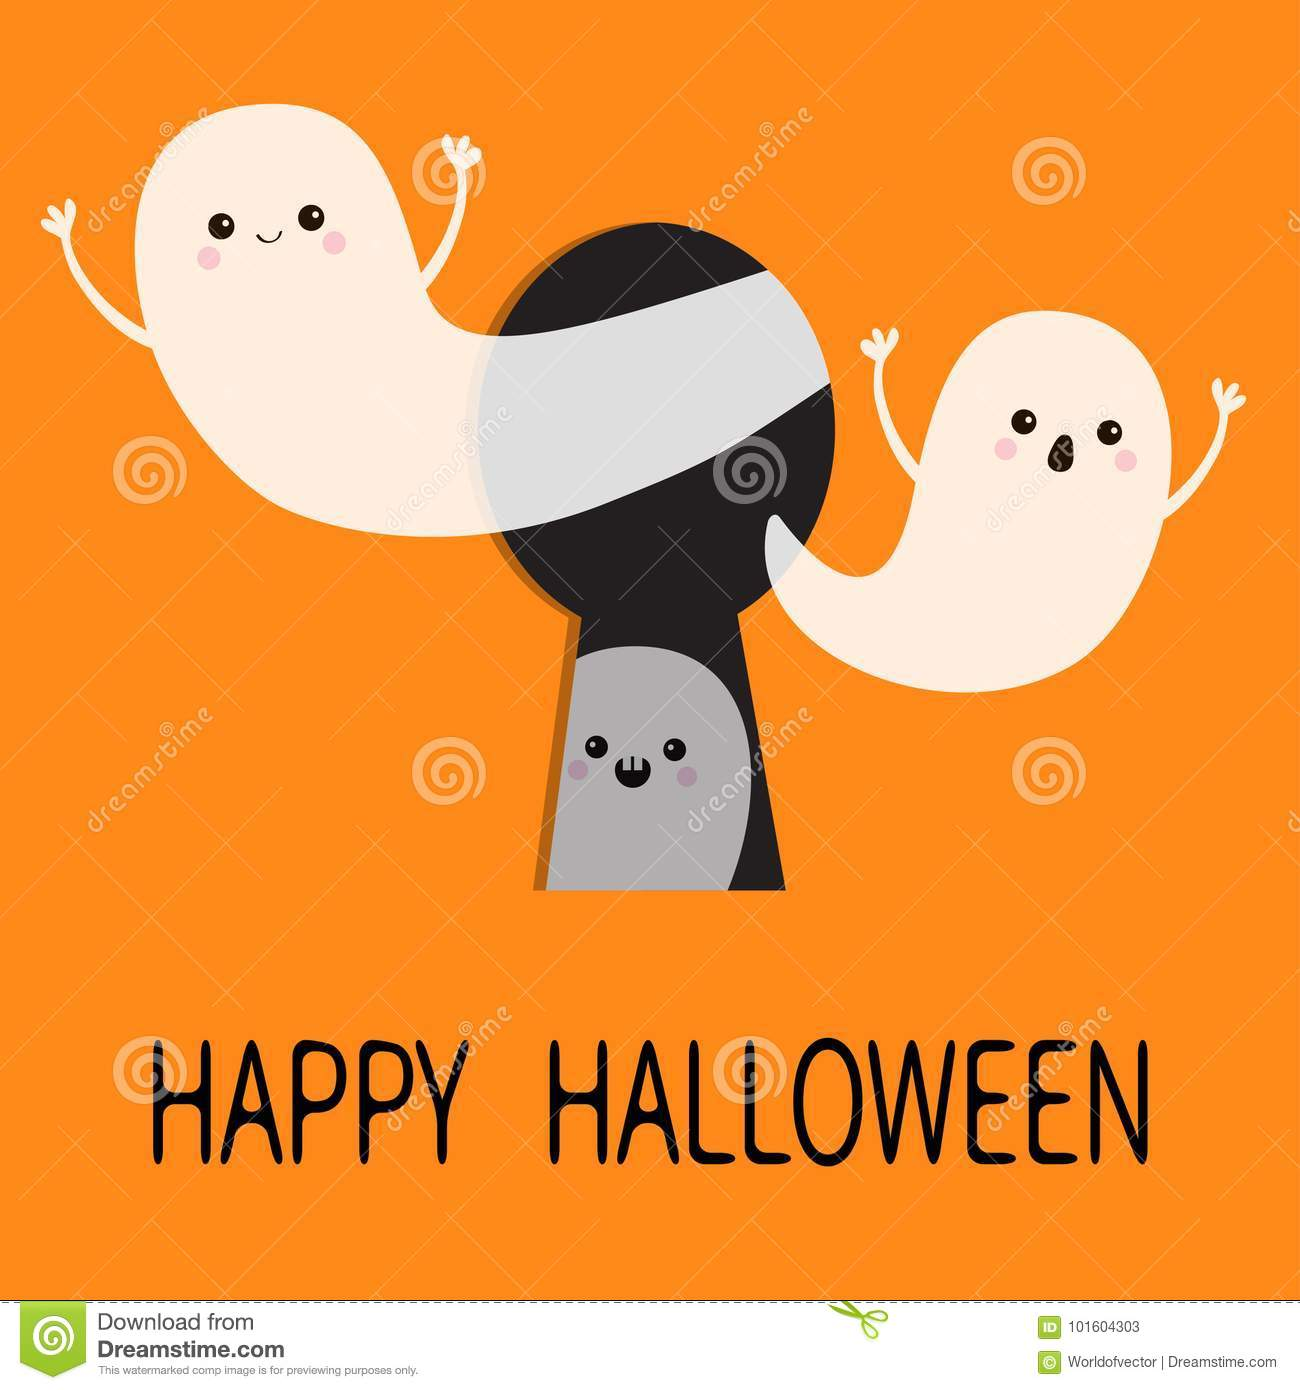 flying ghost spirit set happy halloween three scary white ghosts key hole cute cartoon spooky character face frightening hands orange background